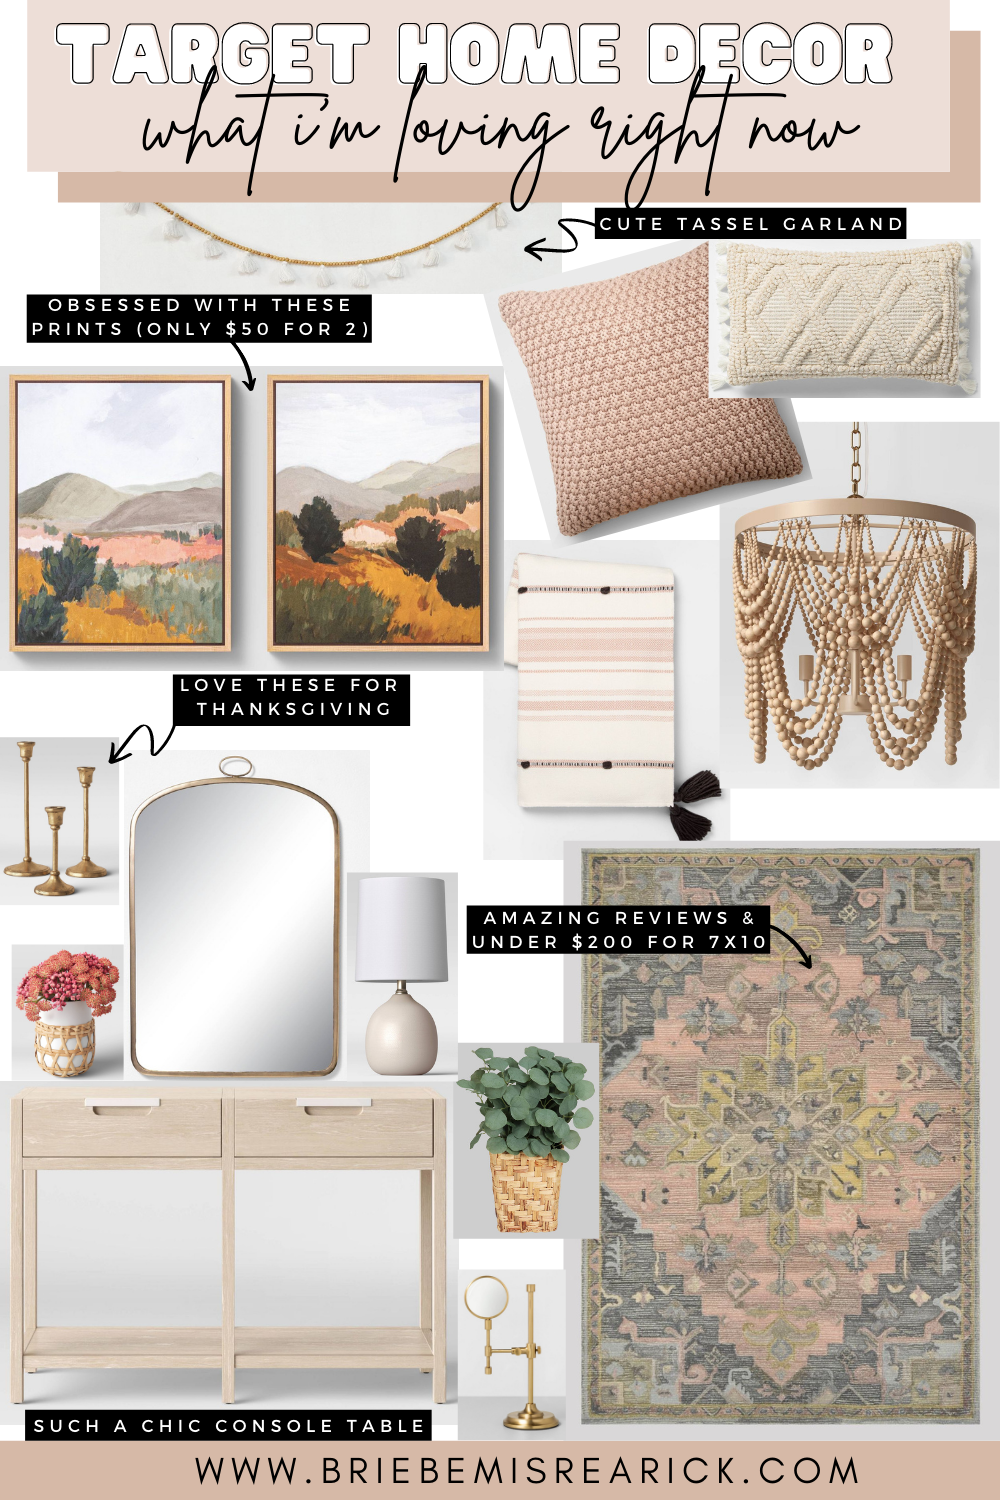 Target Home Decor: What I'm Loving Right Now